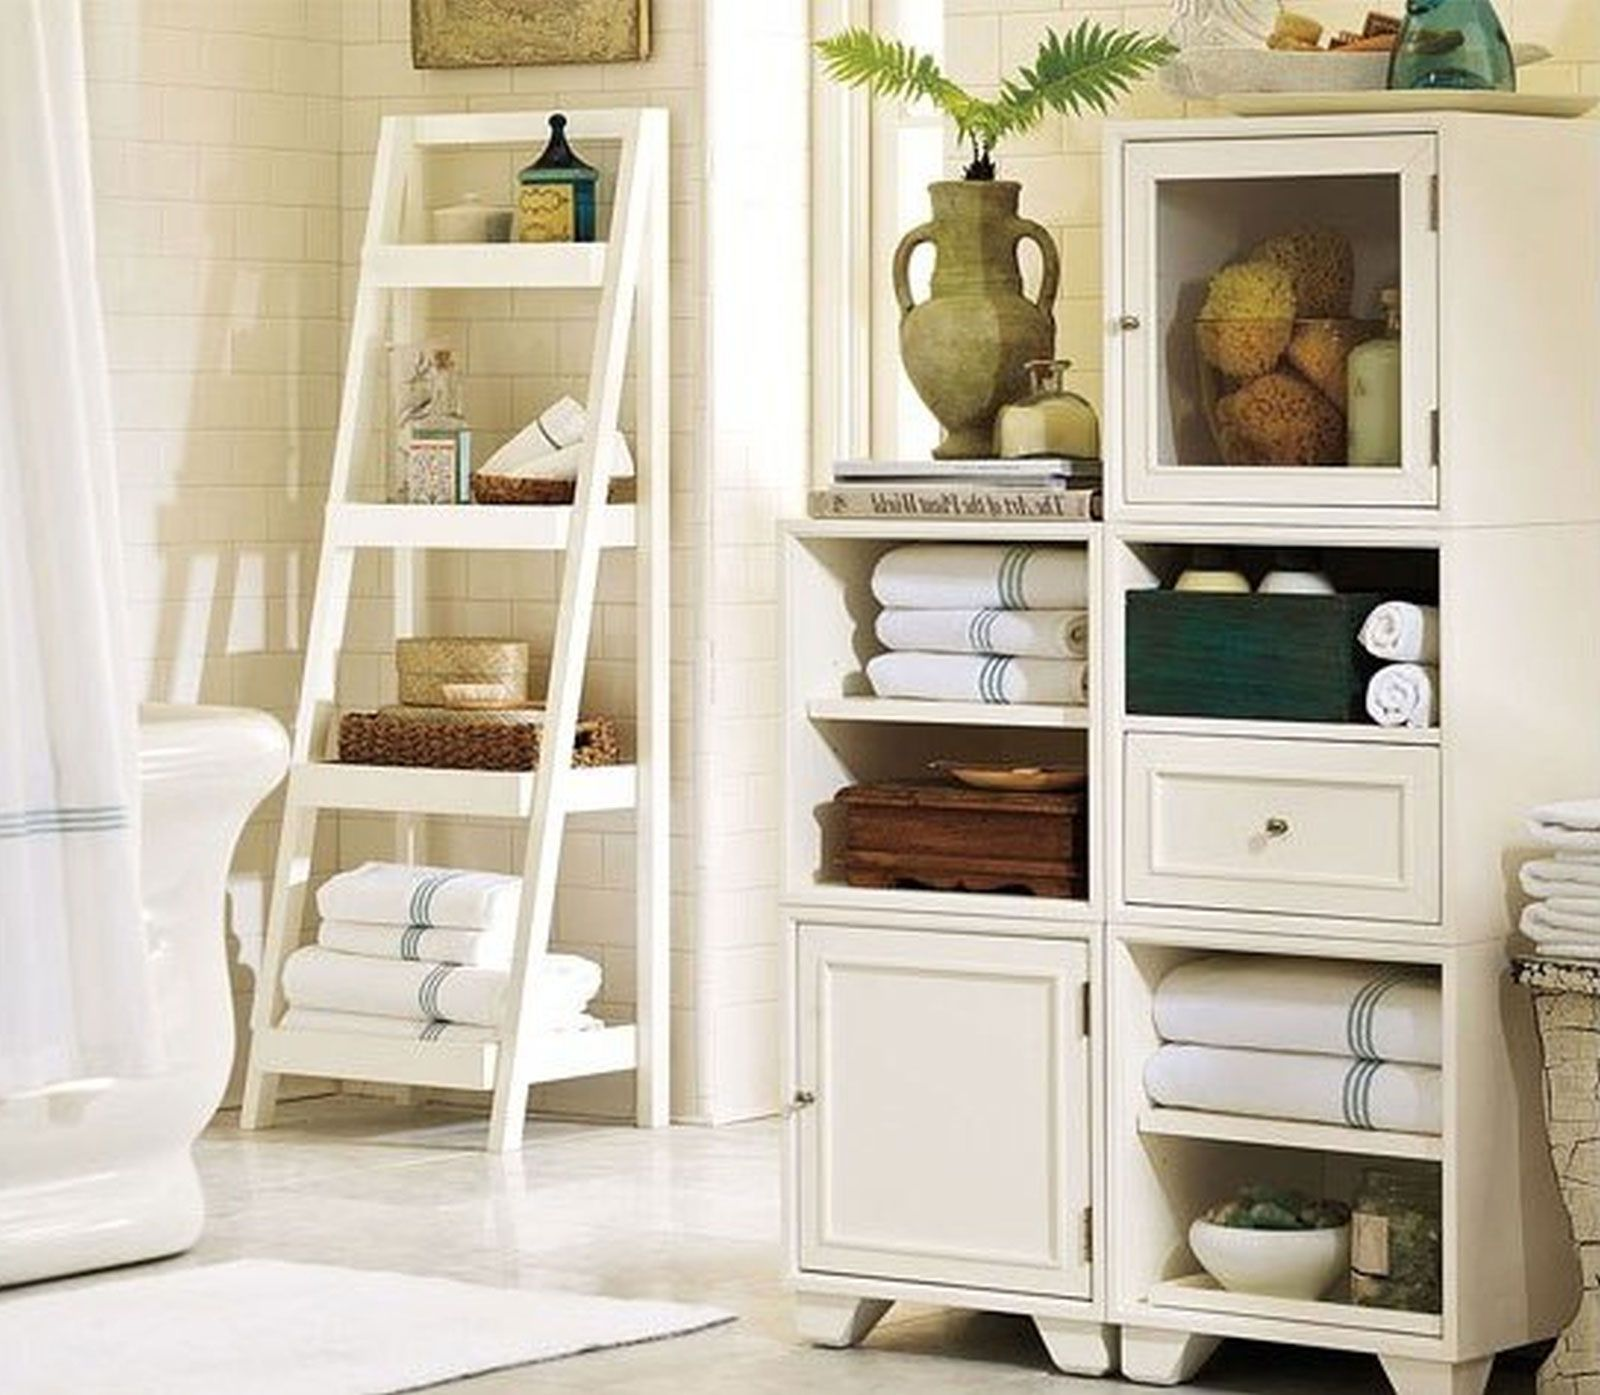 Another Storage Idea For Large Wall In Master Bath Bathroom - Large towel storage for small bathroom ideas